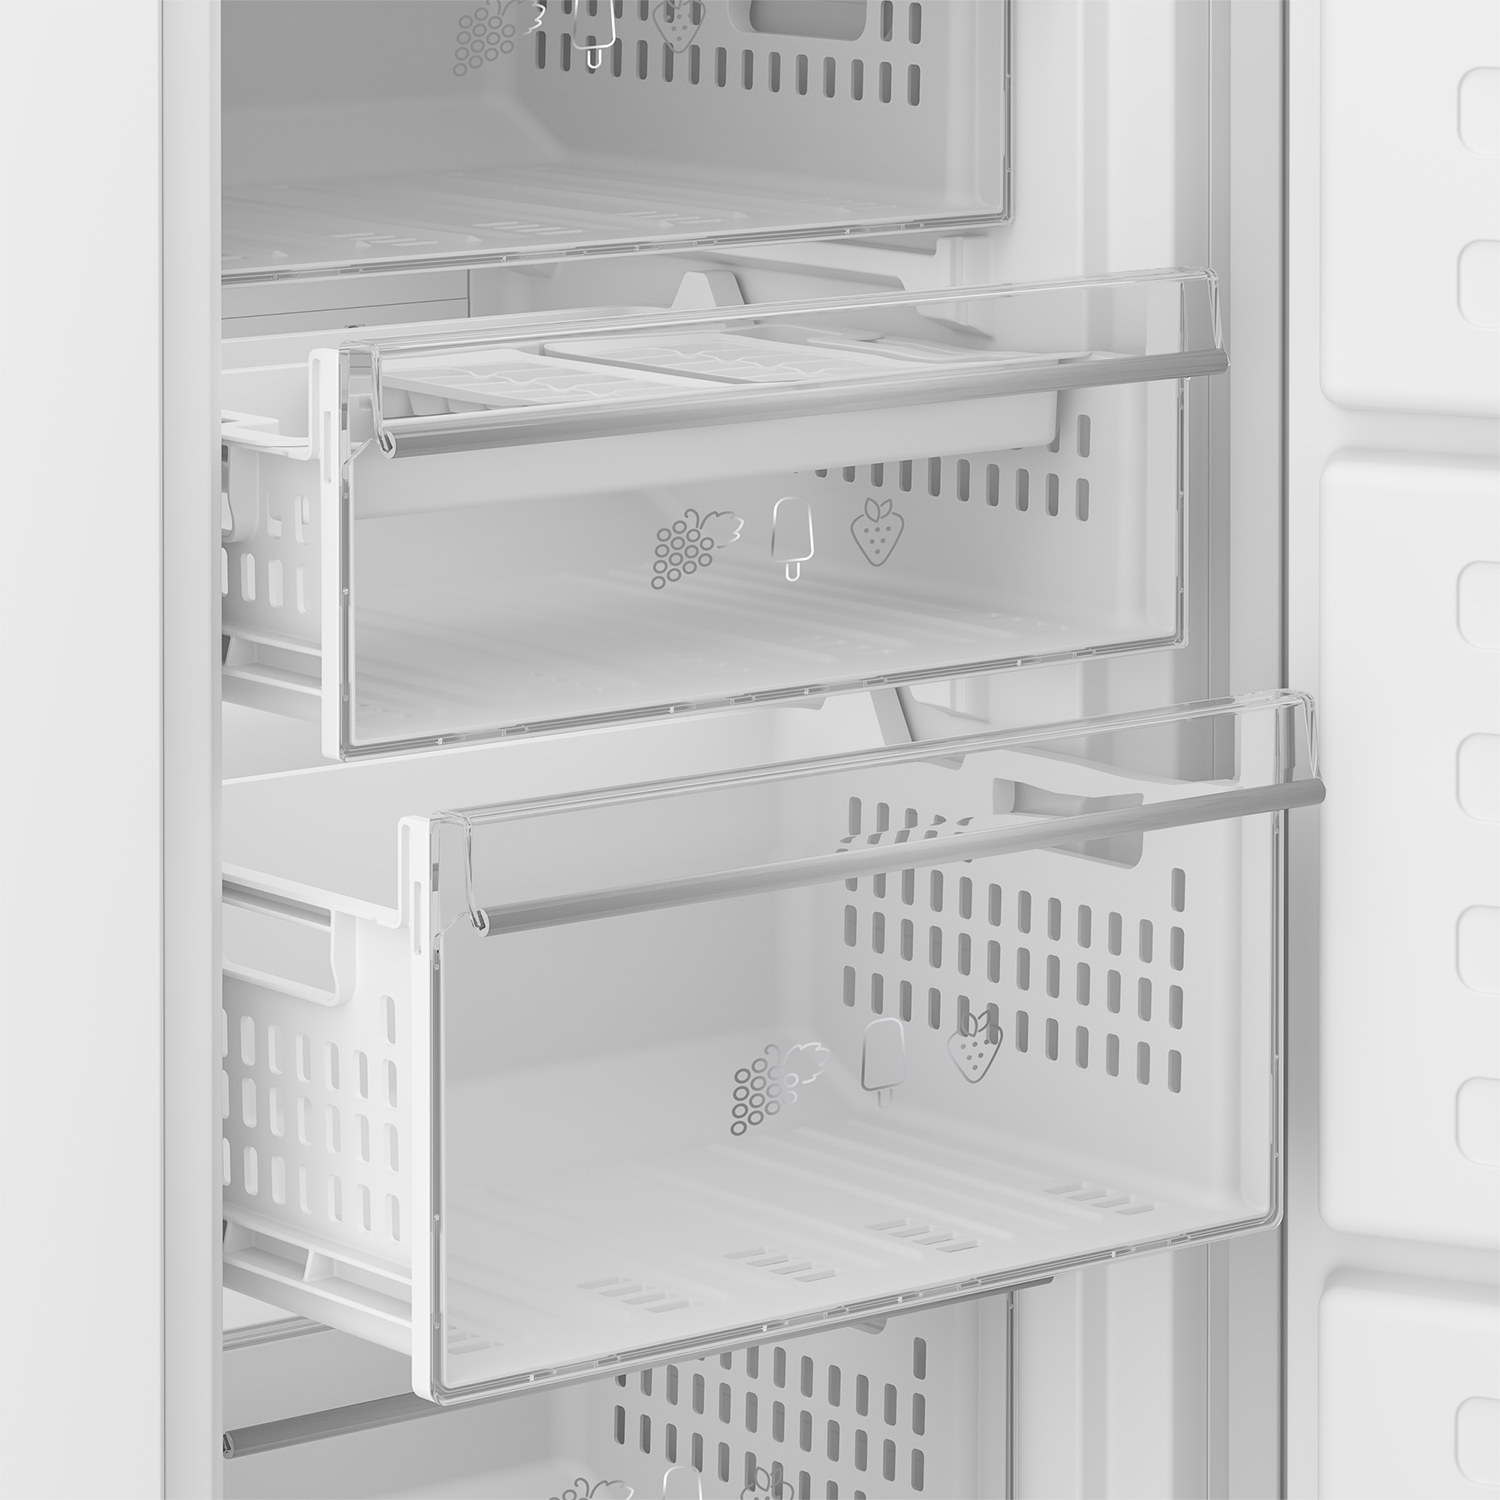 Blomberg 54cm Integrated Frost Free Tall Freezer - White - 2